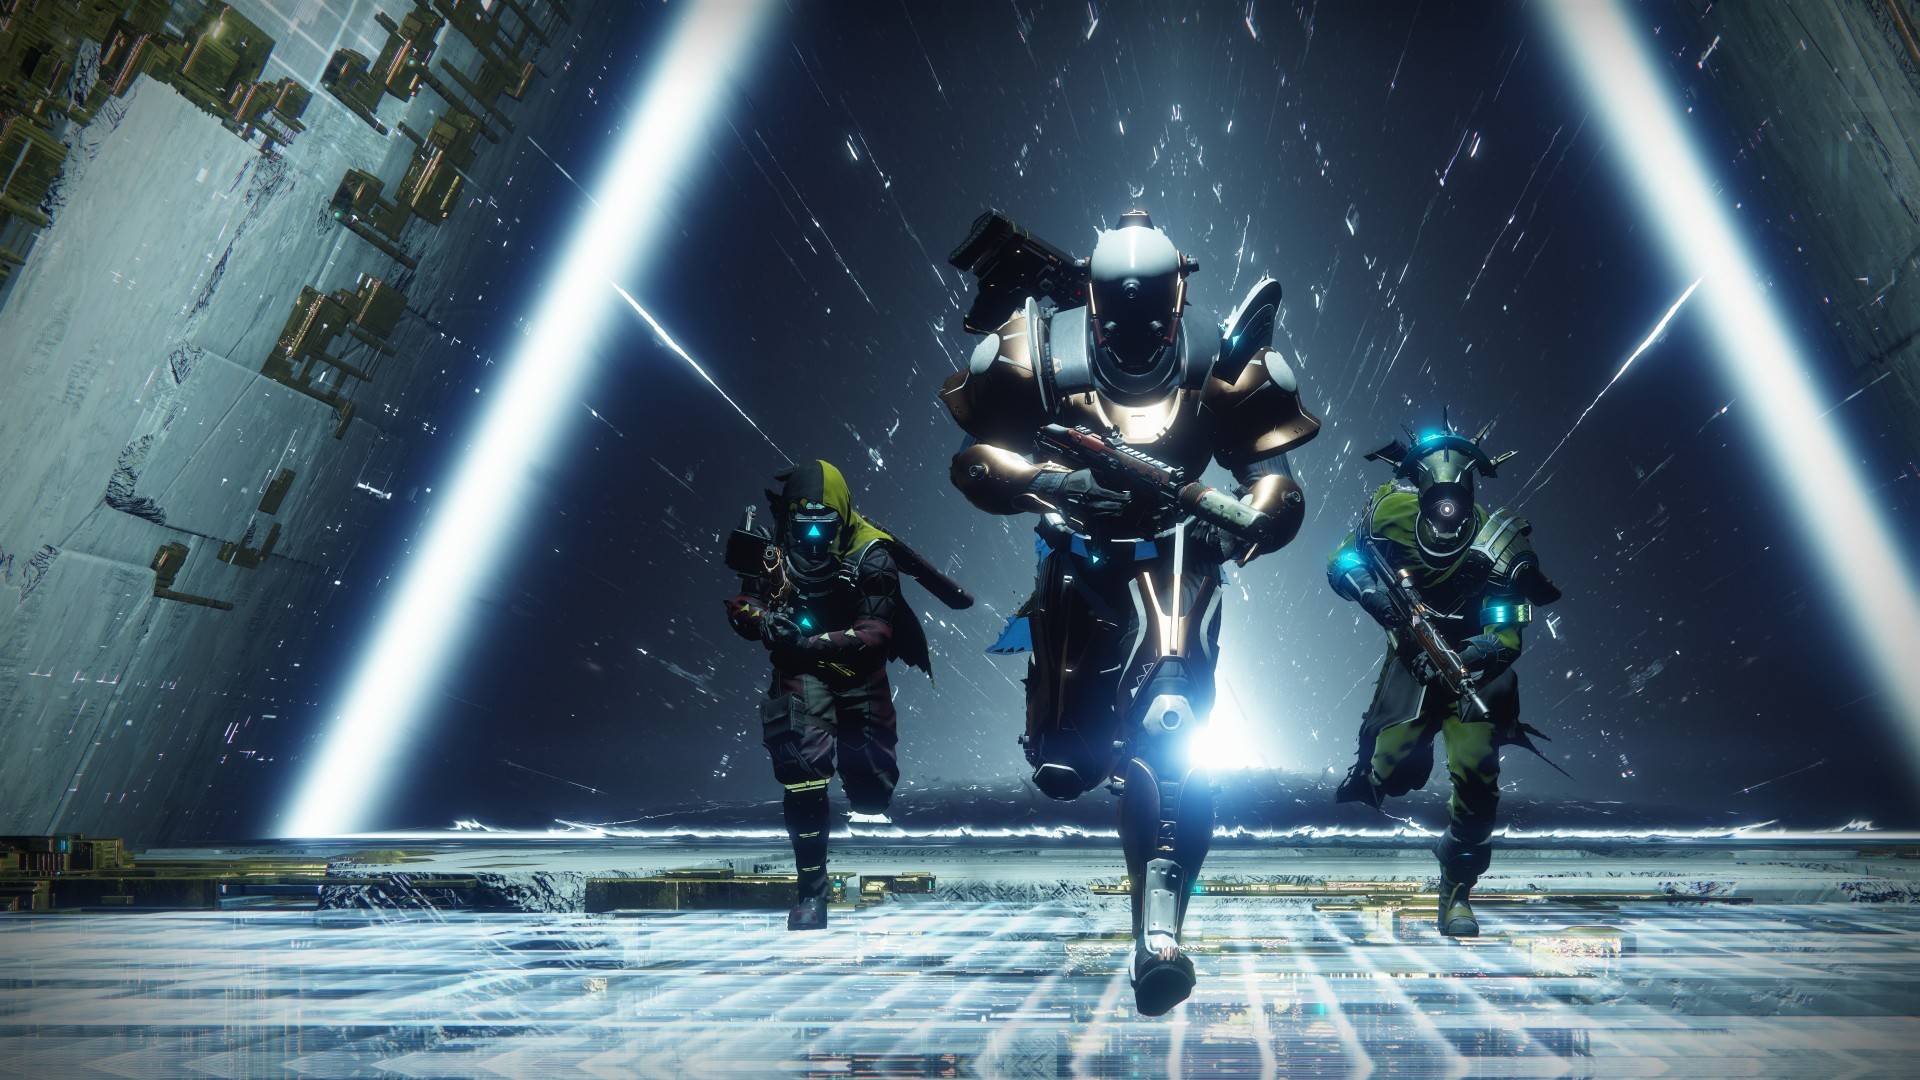 """The most meaningful moment as a player of our game should never be reading about it on Twitter"" – Bungie's David 'DeeJ' Dague on the Destiny 2 community 